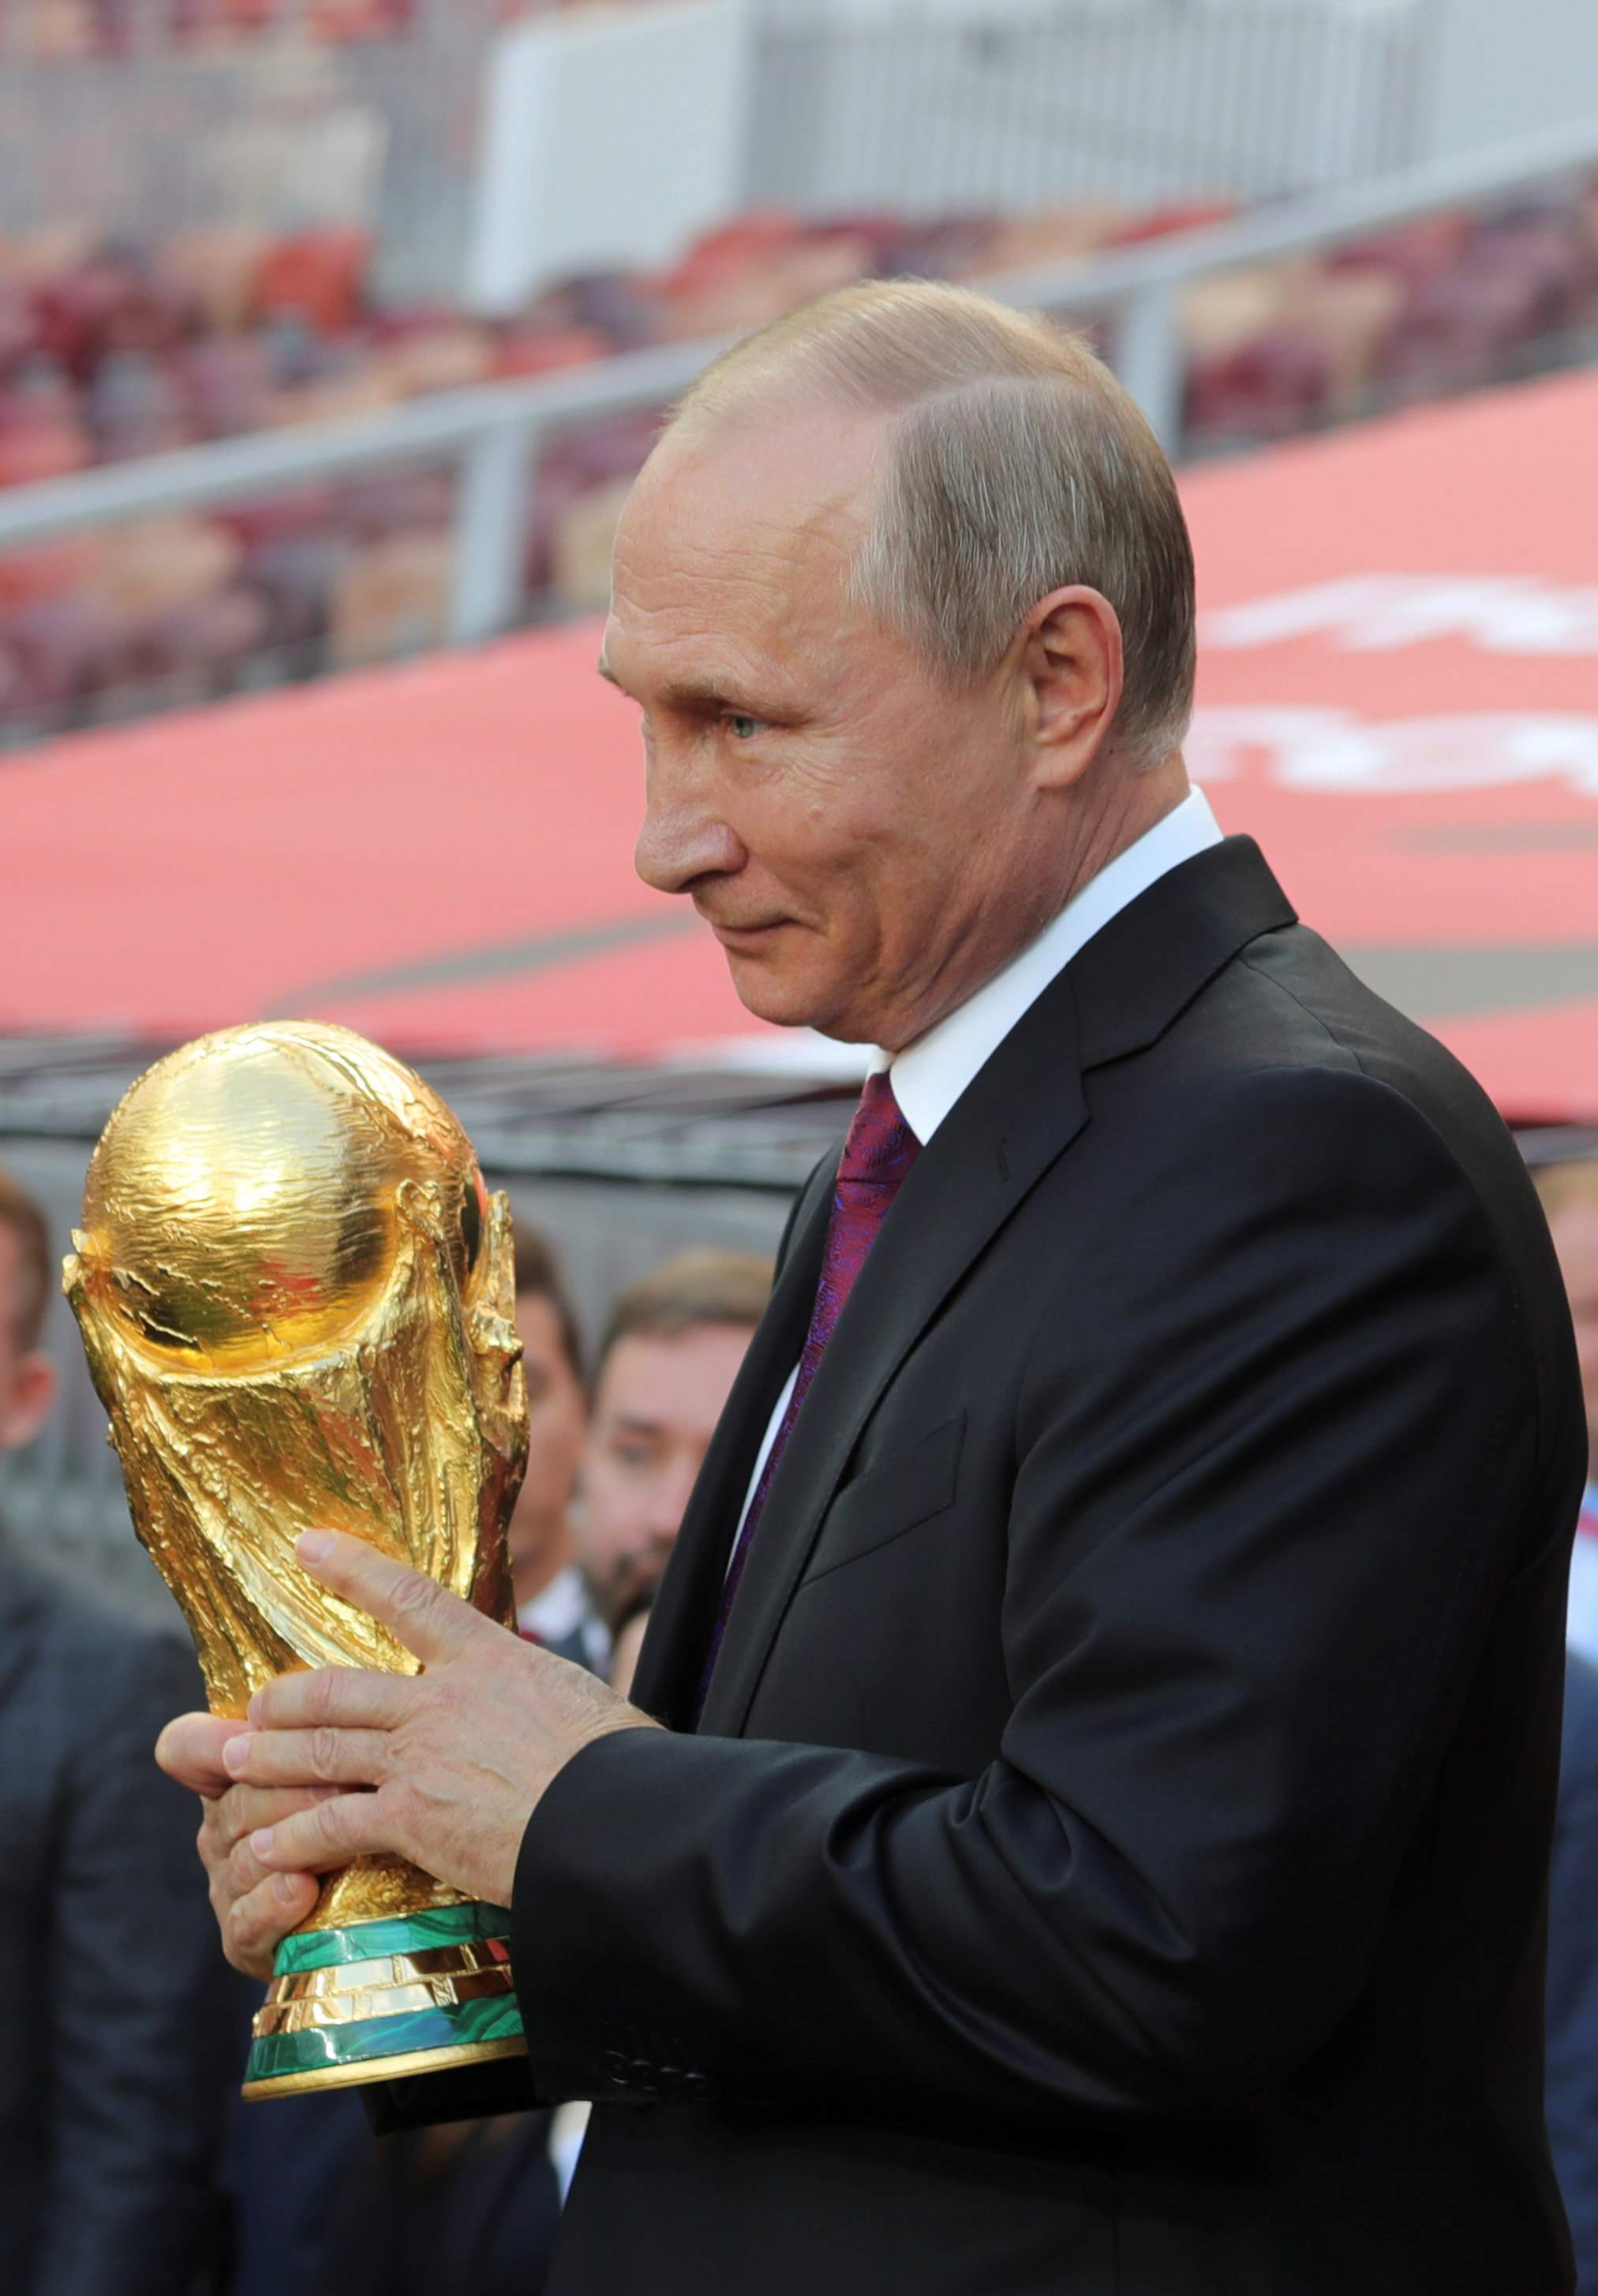 Putin Fifa Head Send World Cup Trophy On Russian Tour Cgtn